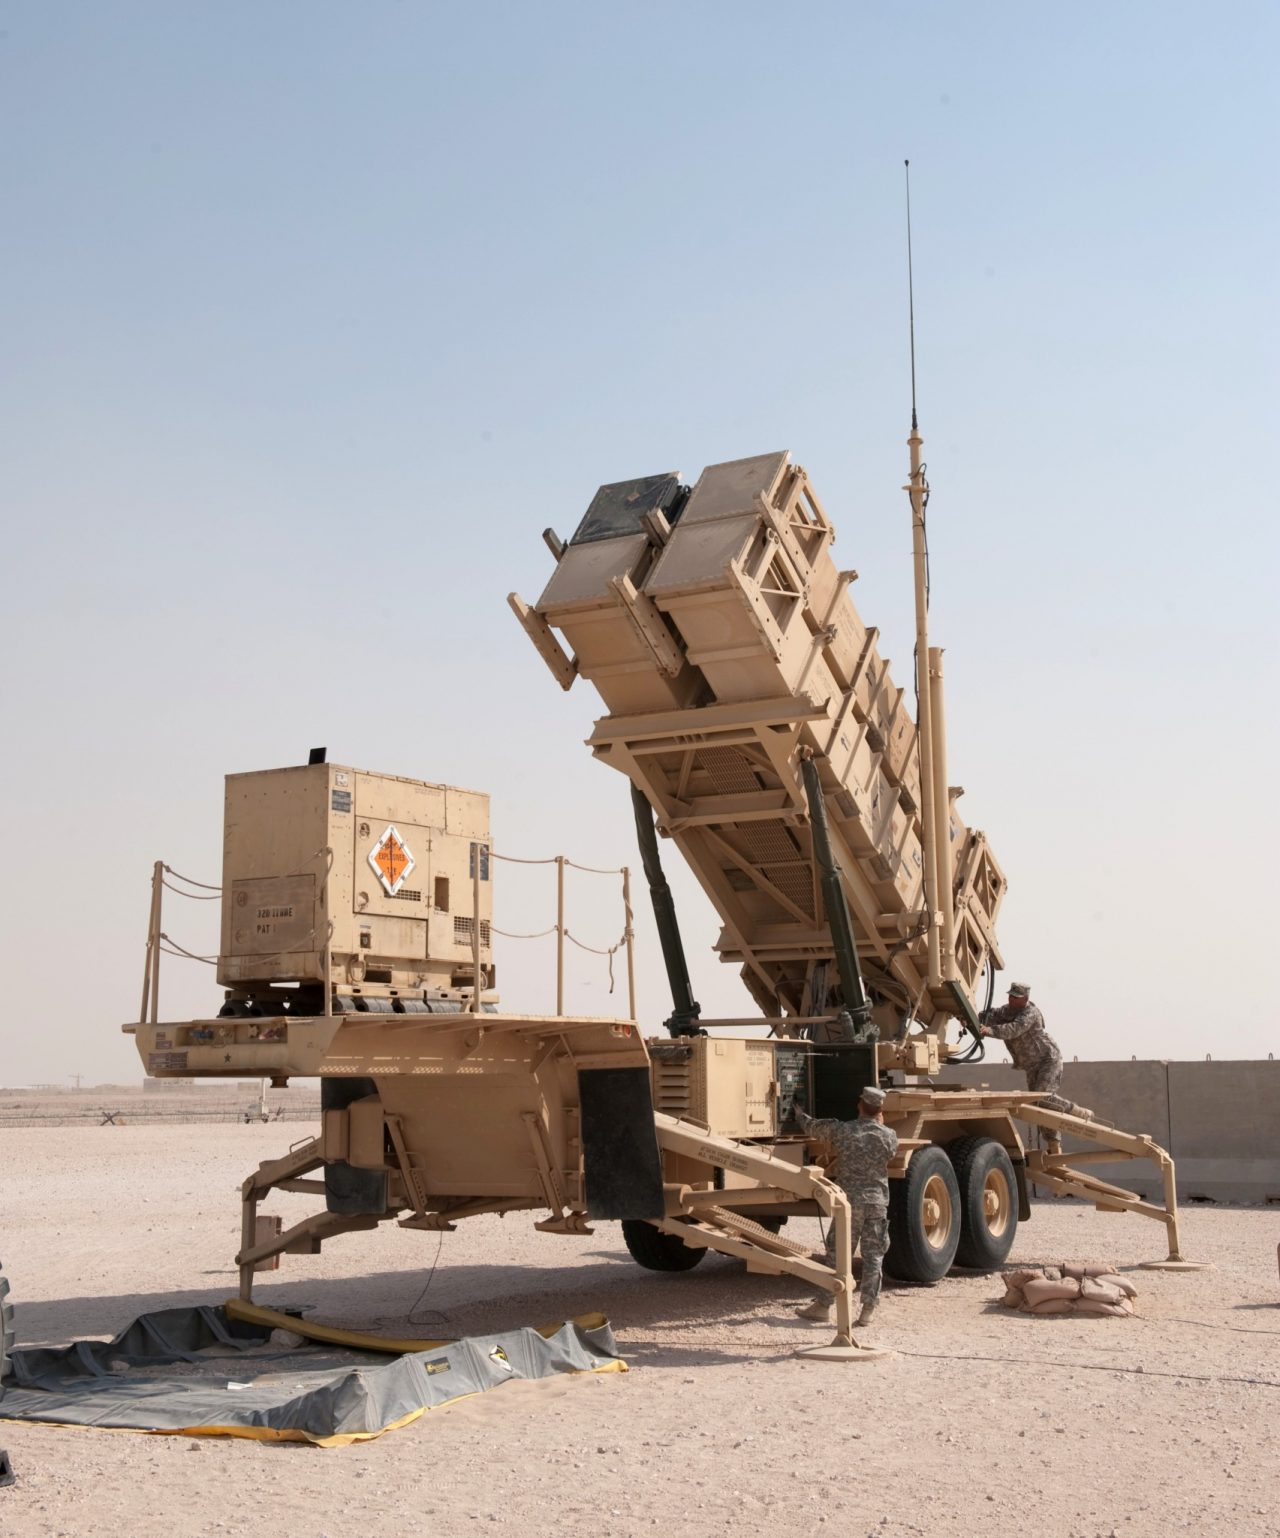 https://www.aldrimer.no/wp-content/uploads/2017/11/MIM-104_Patriot_surface-to-air_missile_system_launcher-1280x1538.jpg